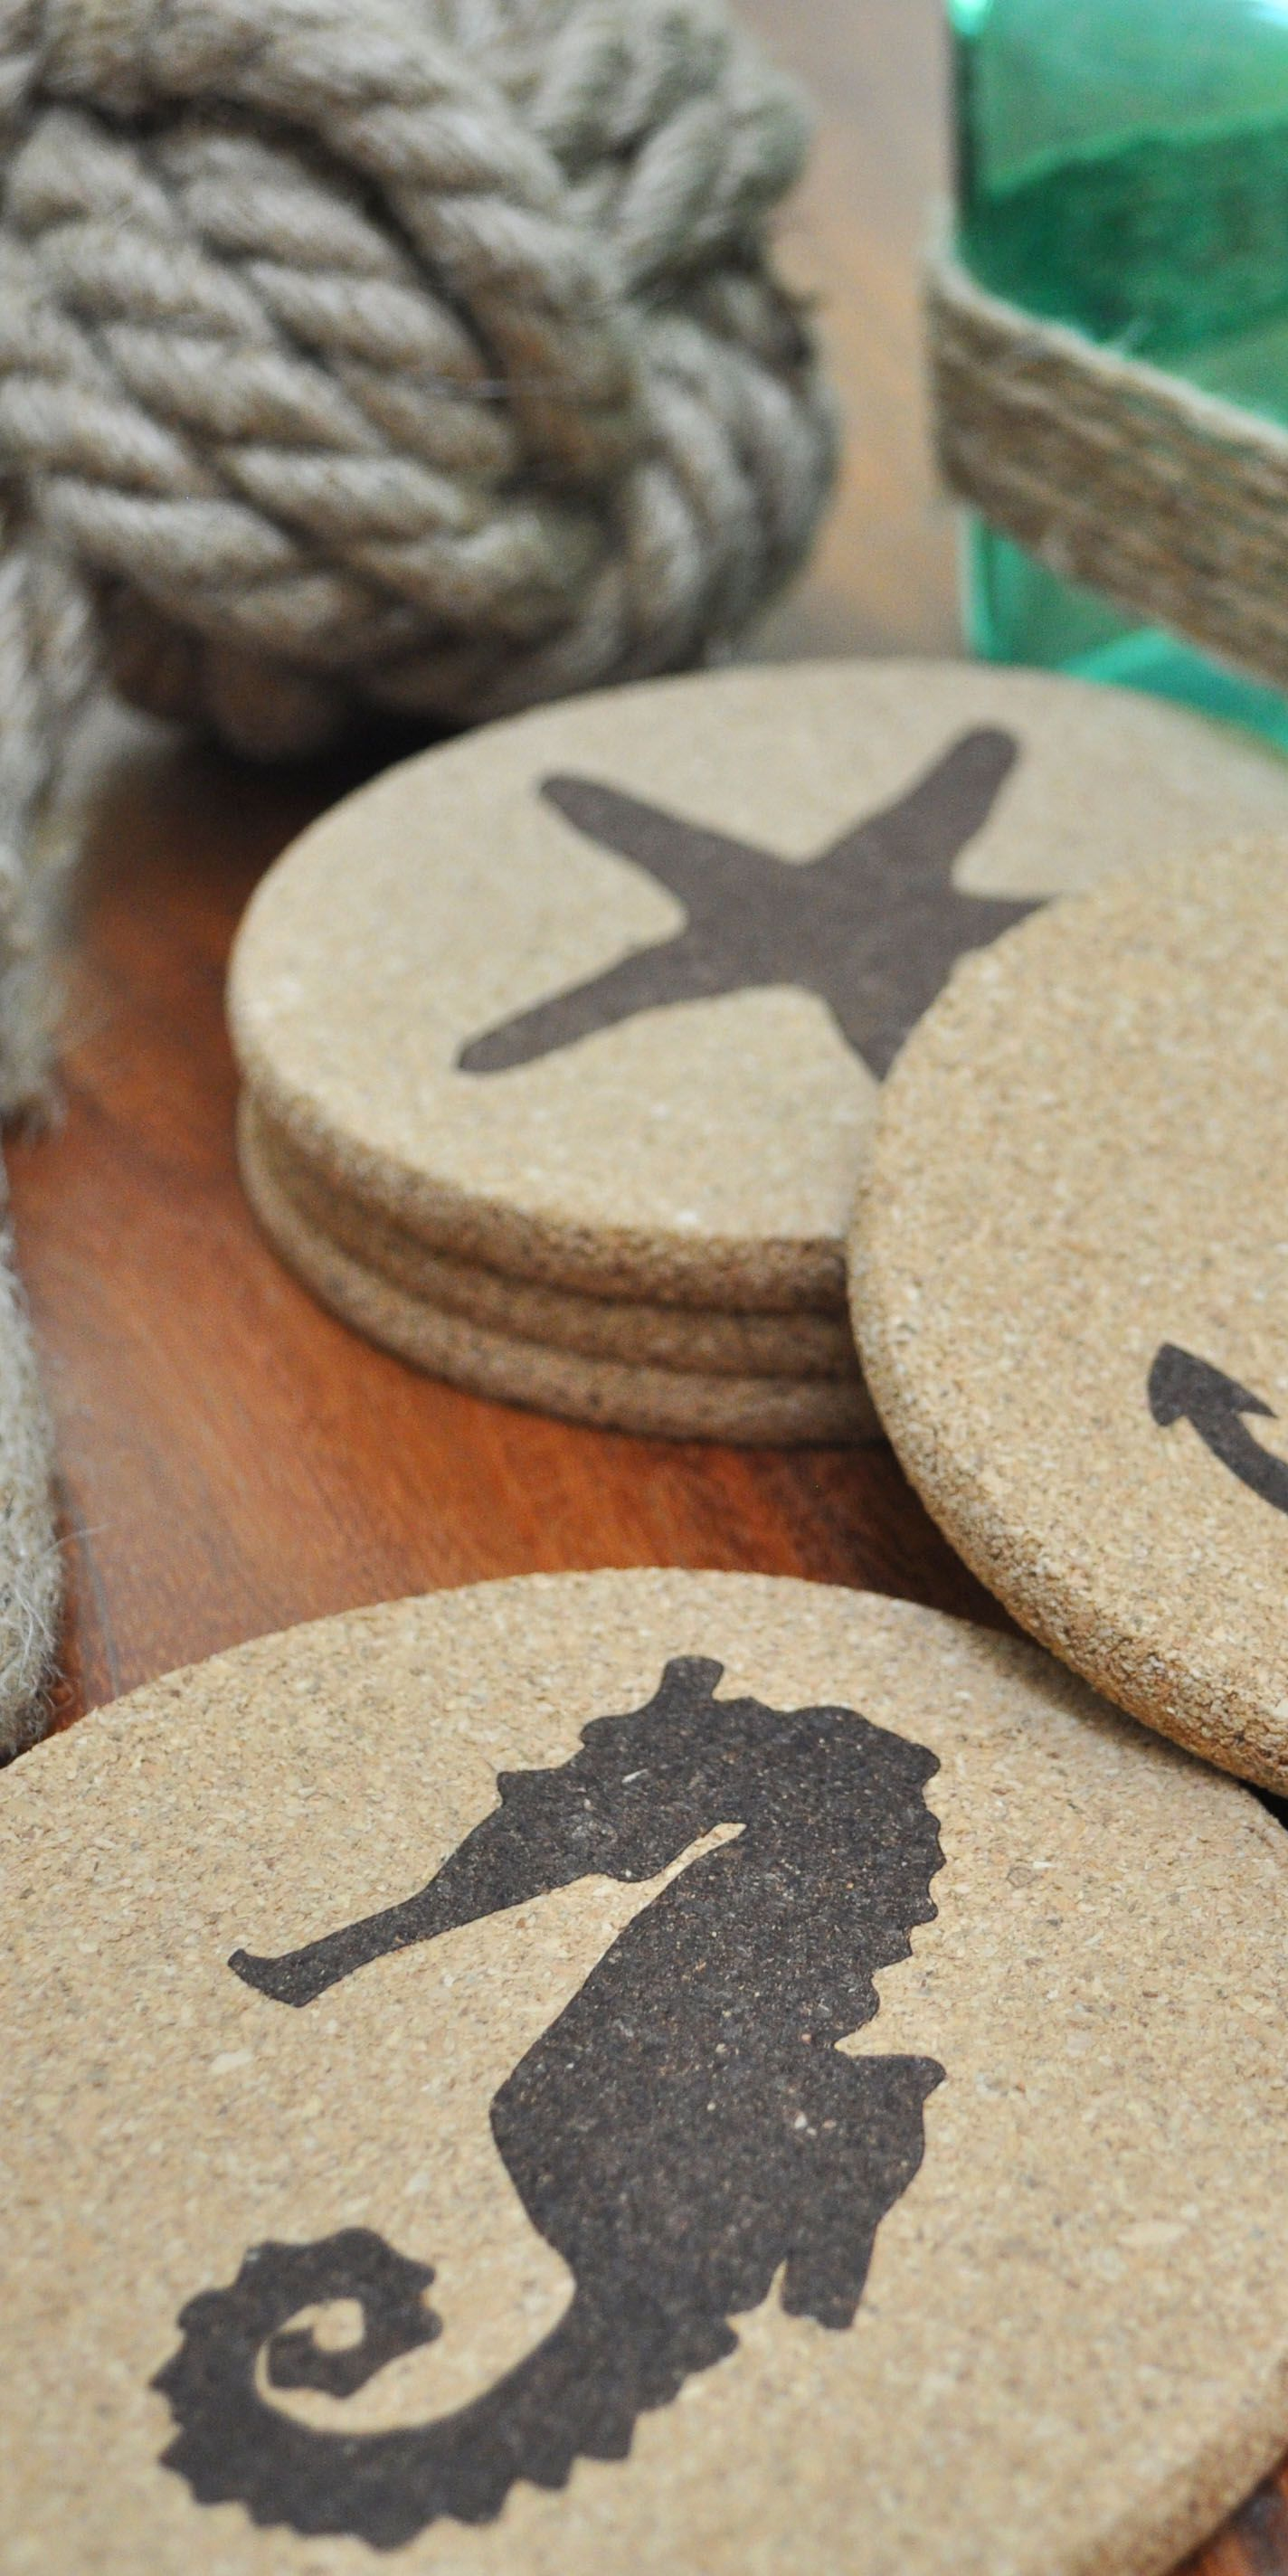 Love These Nautical Beach Themed Cork Coasters They Re The Perfect Addition To Any Coastal Or Lake House Decor